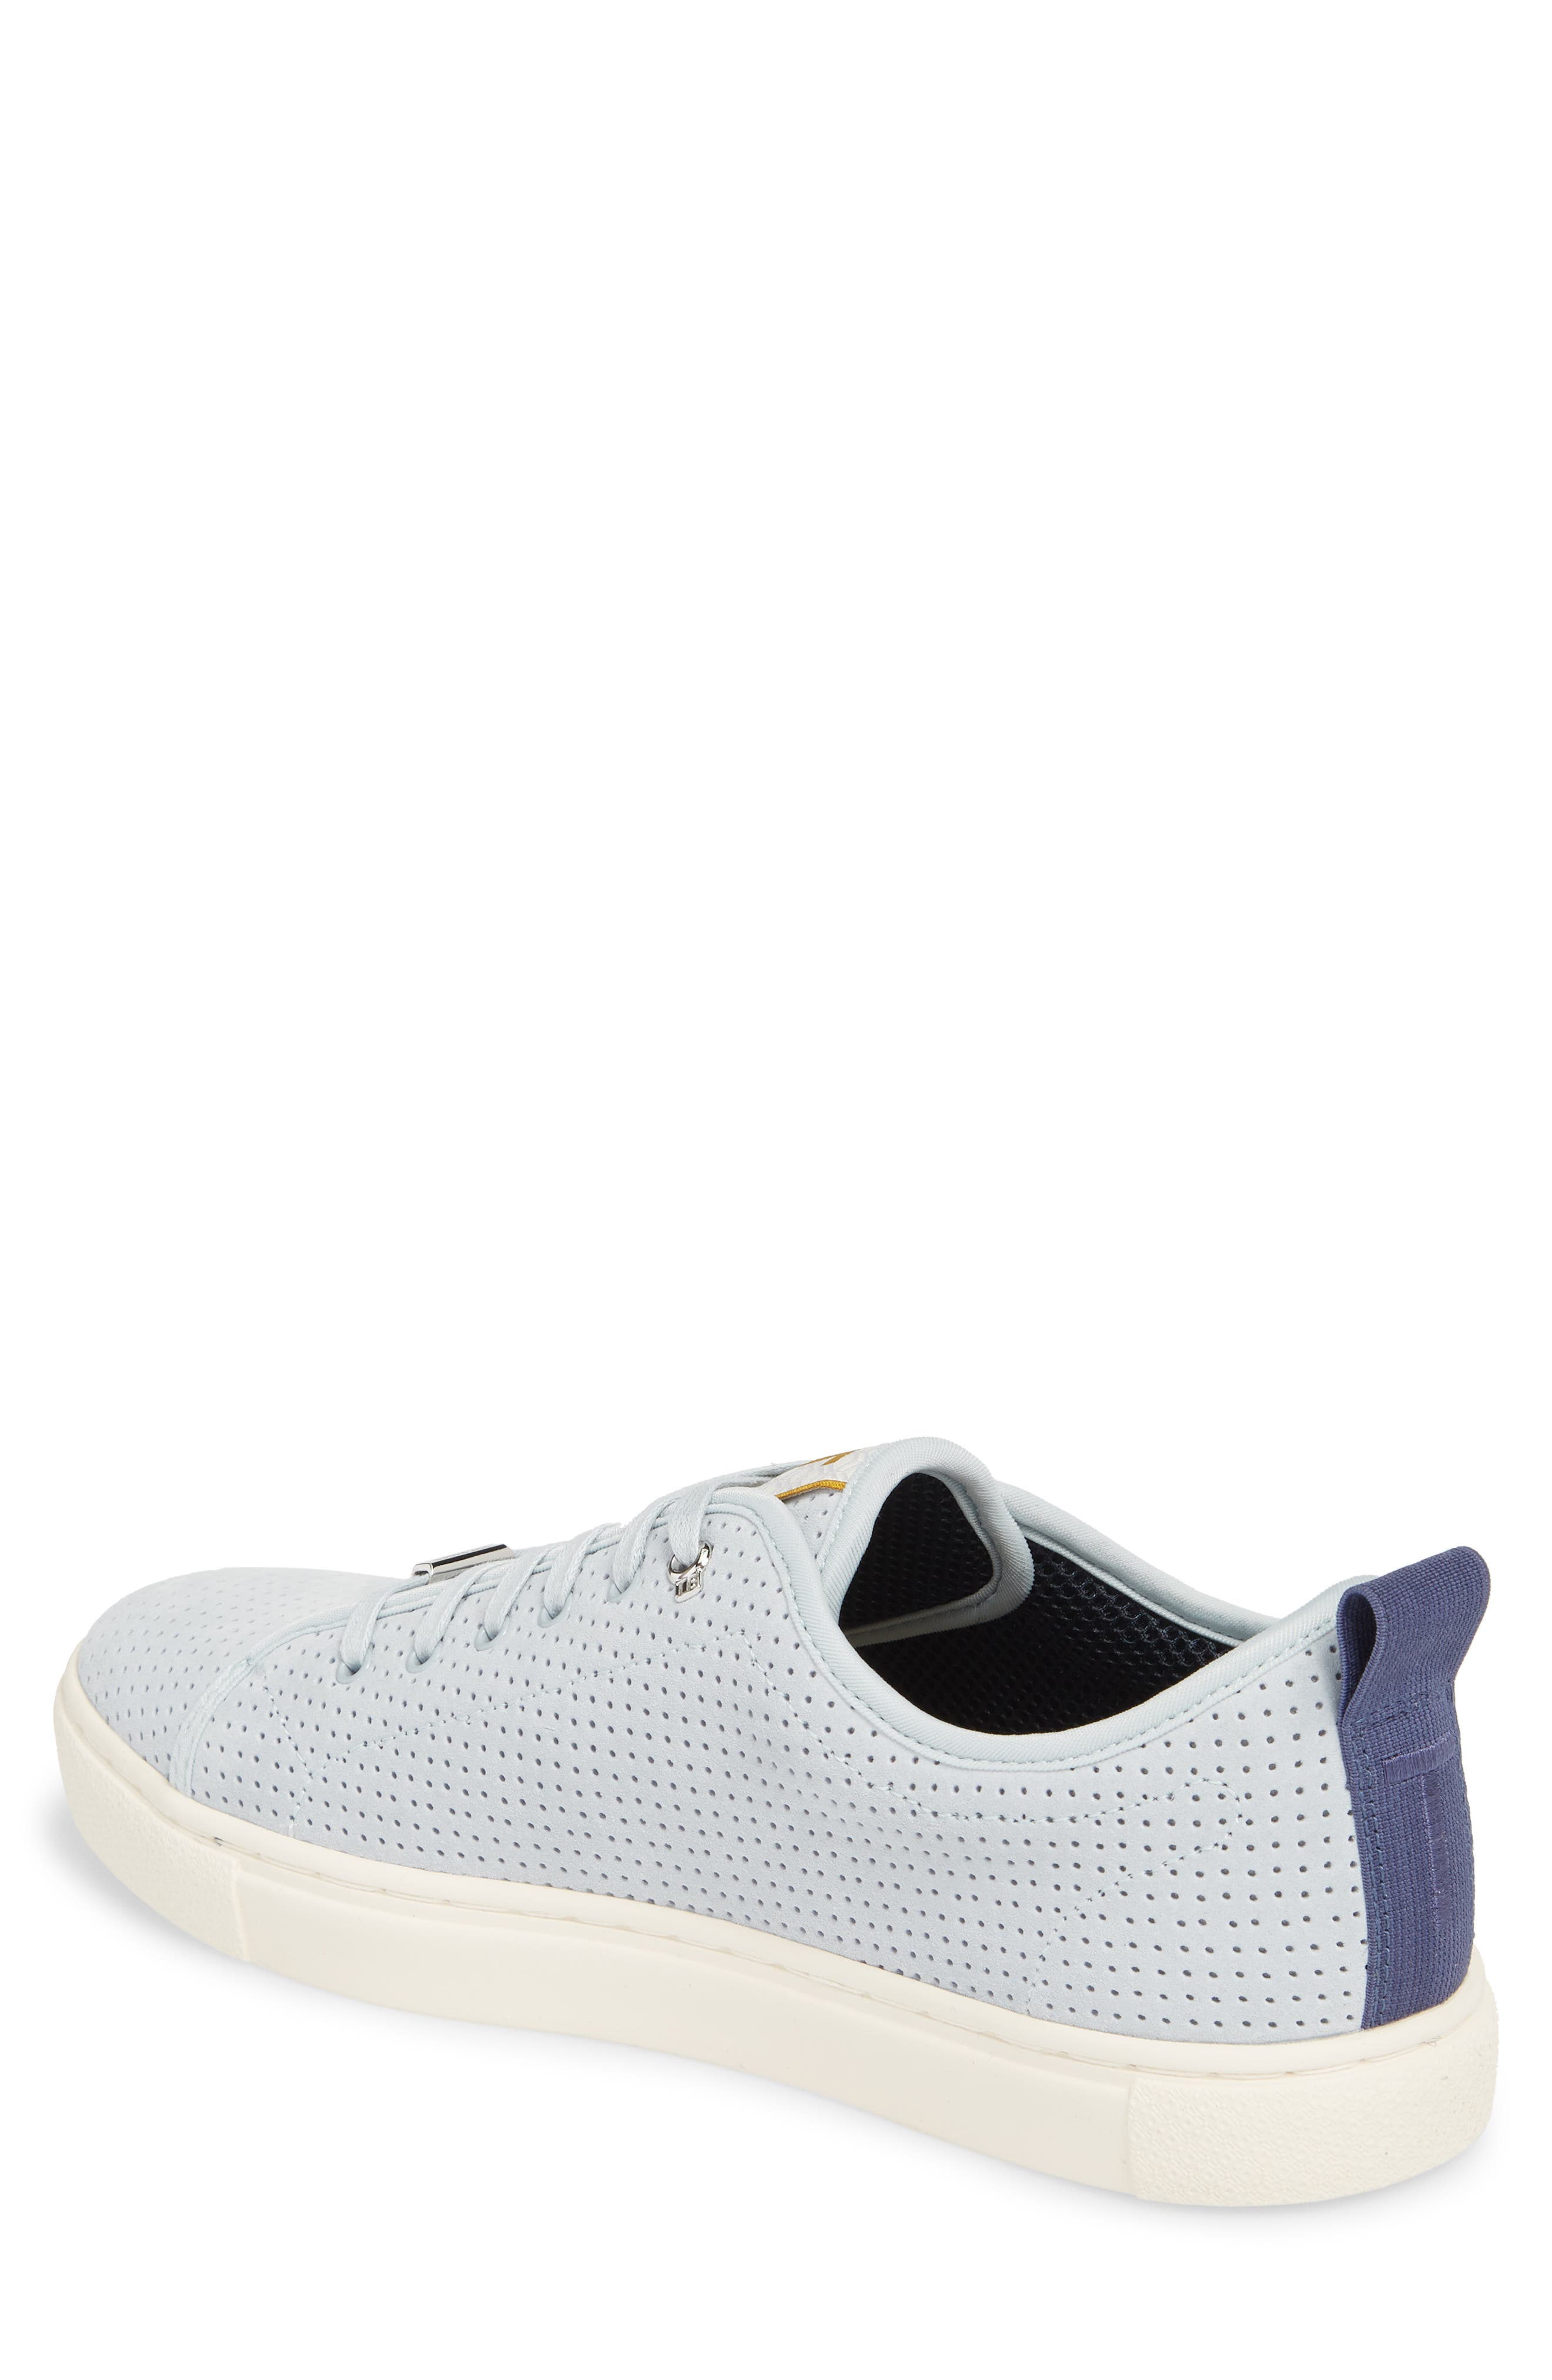 Kaliix Perforated Low Top Sneaker,                             Alternate thumbnail 2, color,                             LIGHT BLUE SUEDE